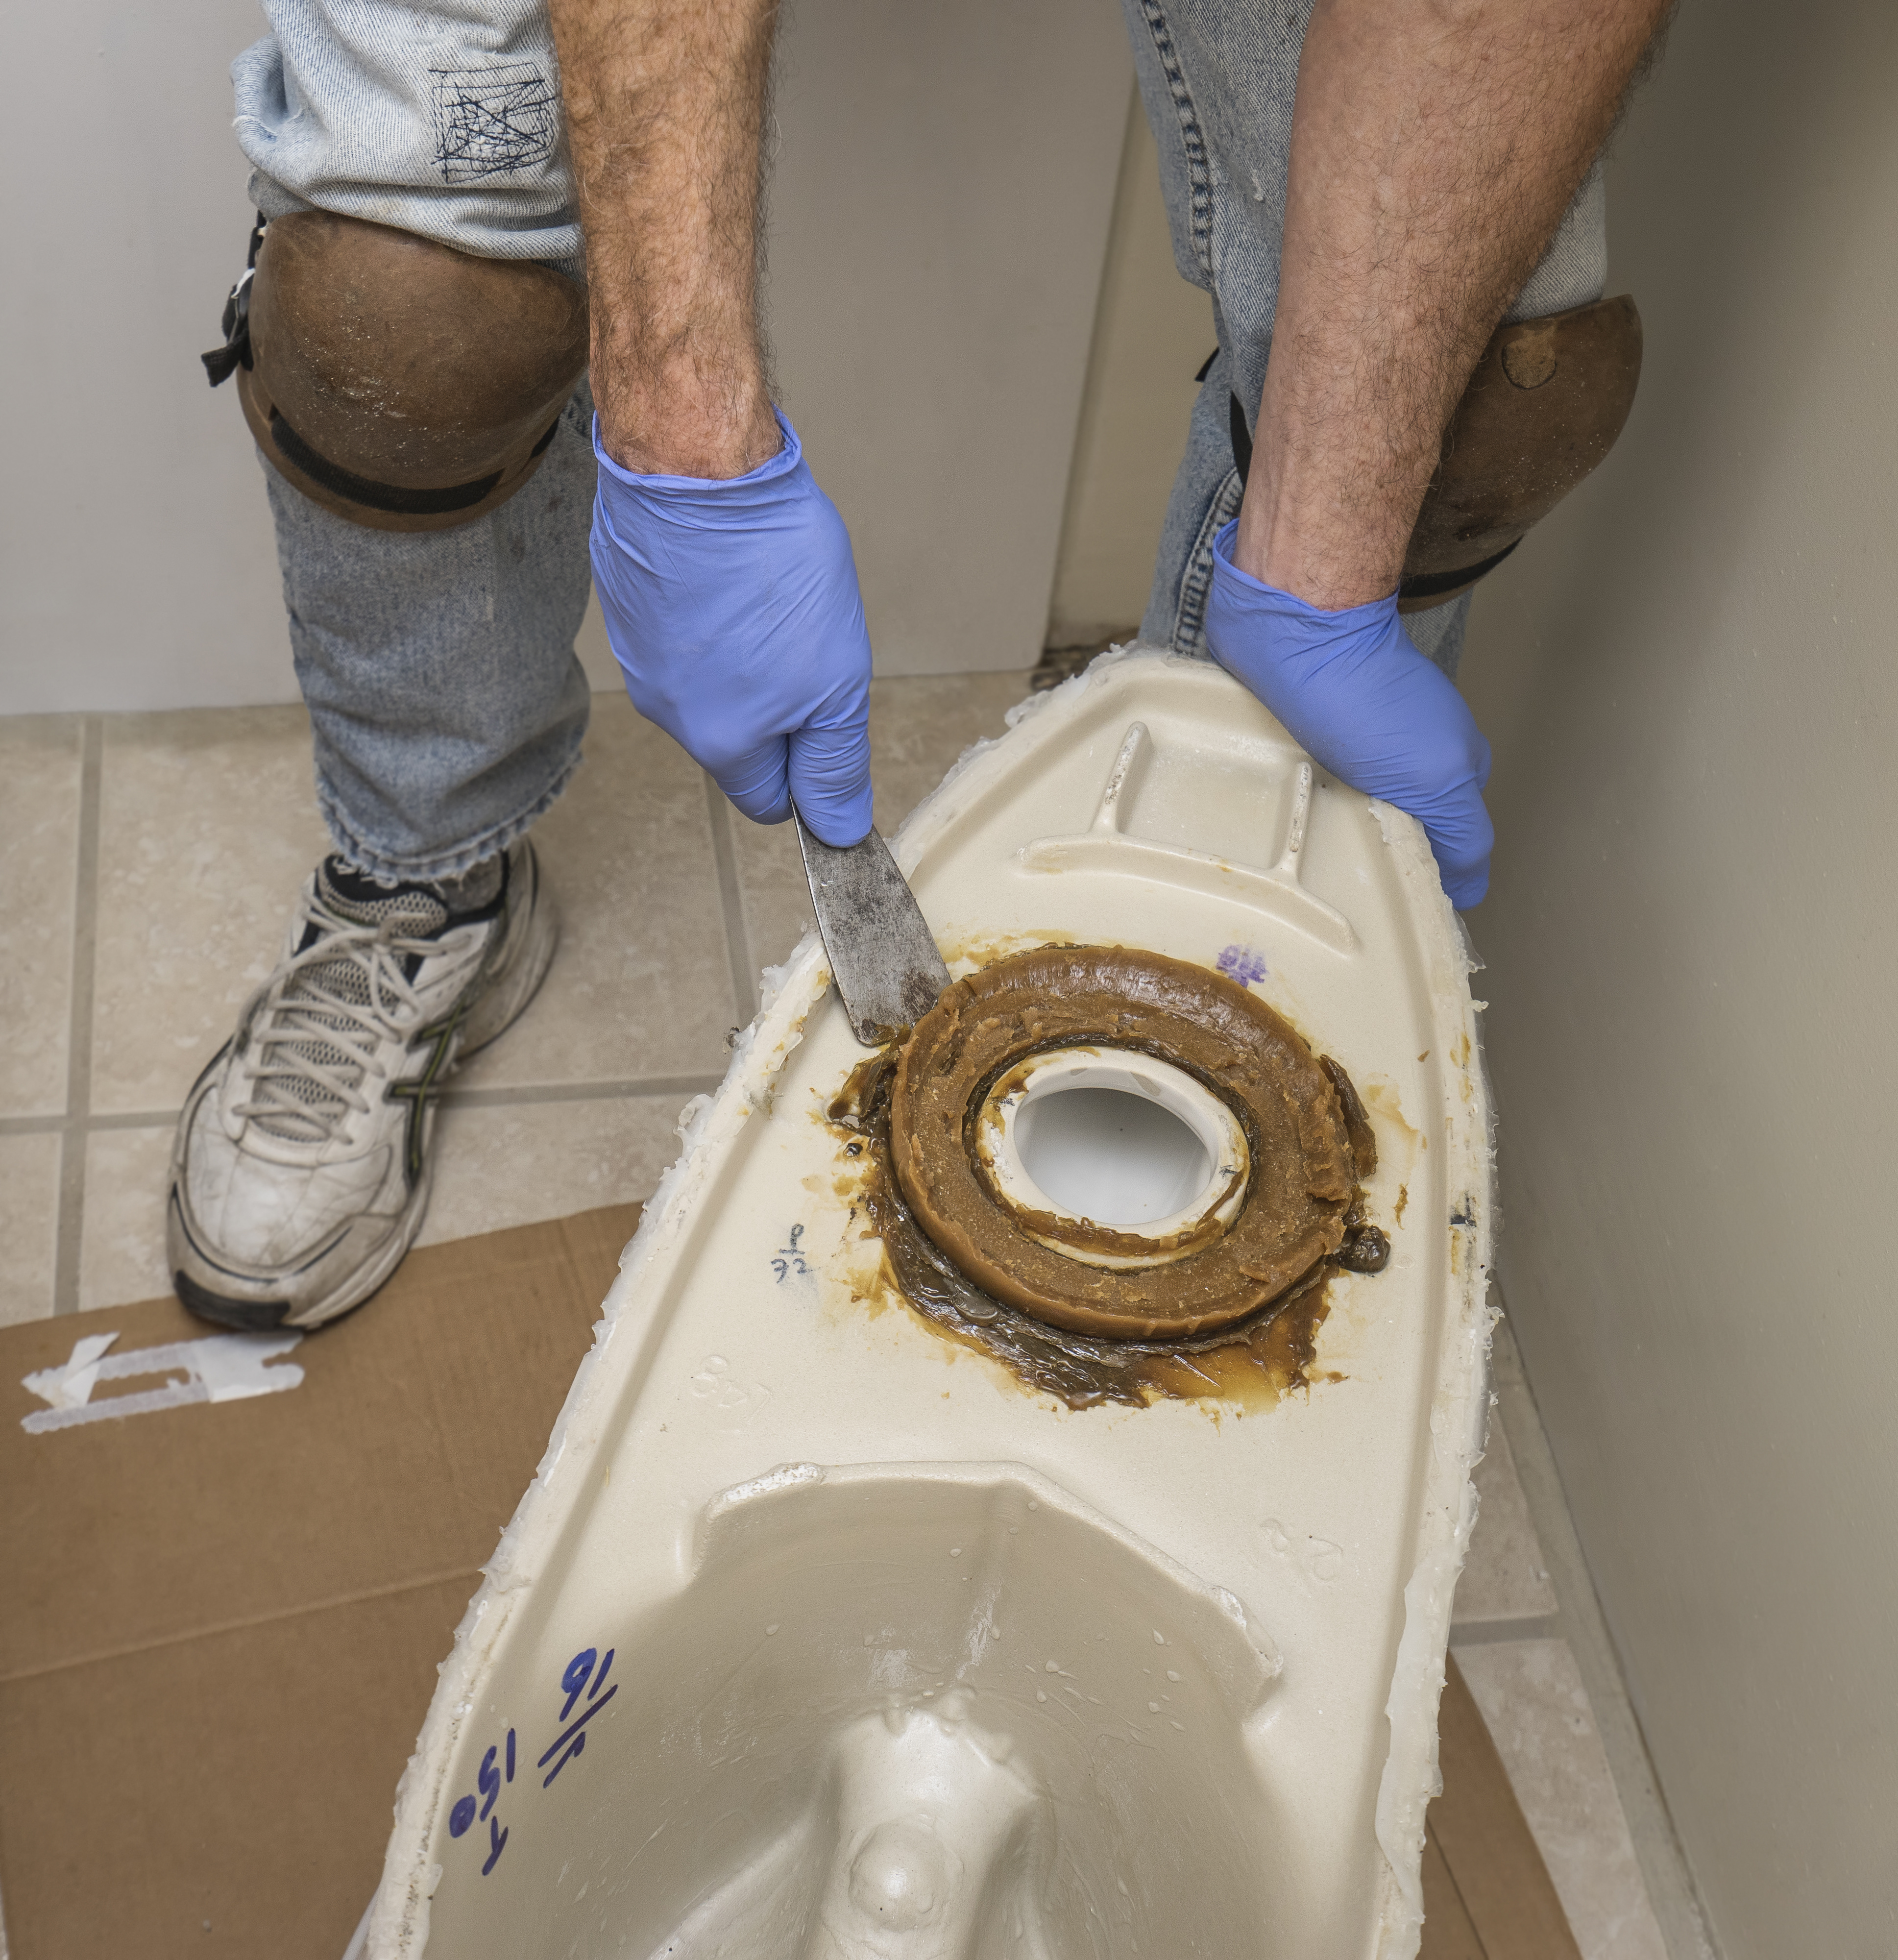 How To: Replace a Toilet Flange | Pittsburgh | Terry's Plumbing